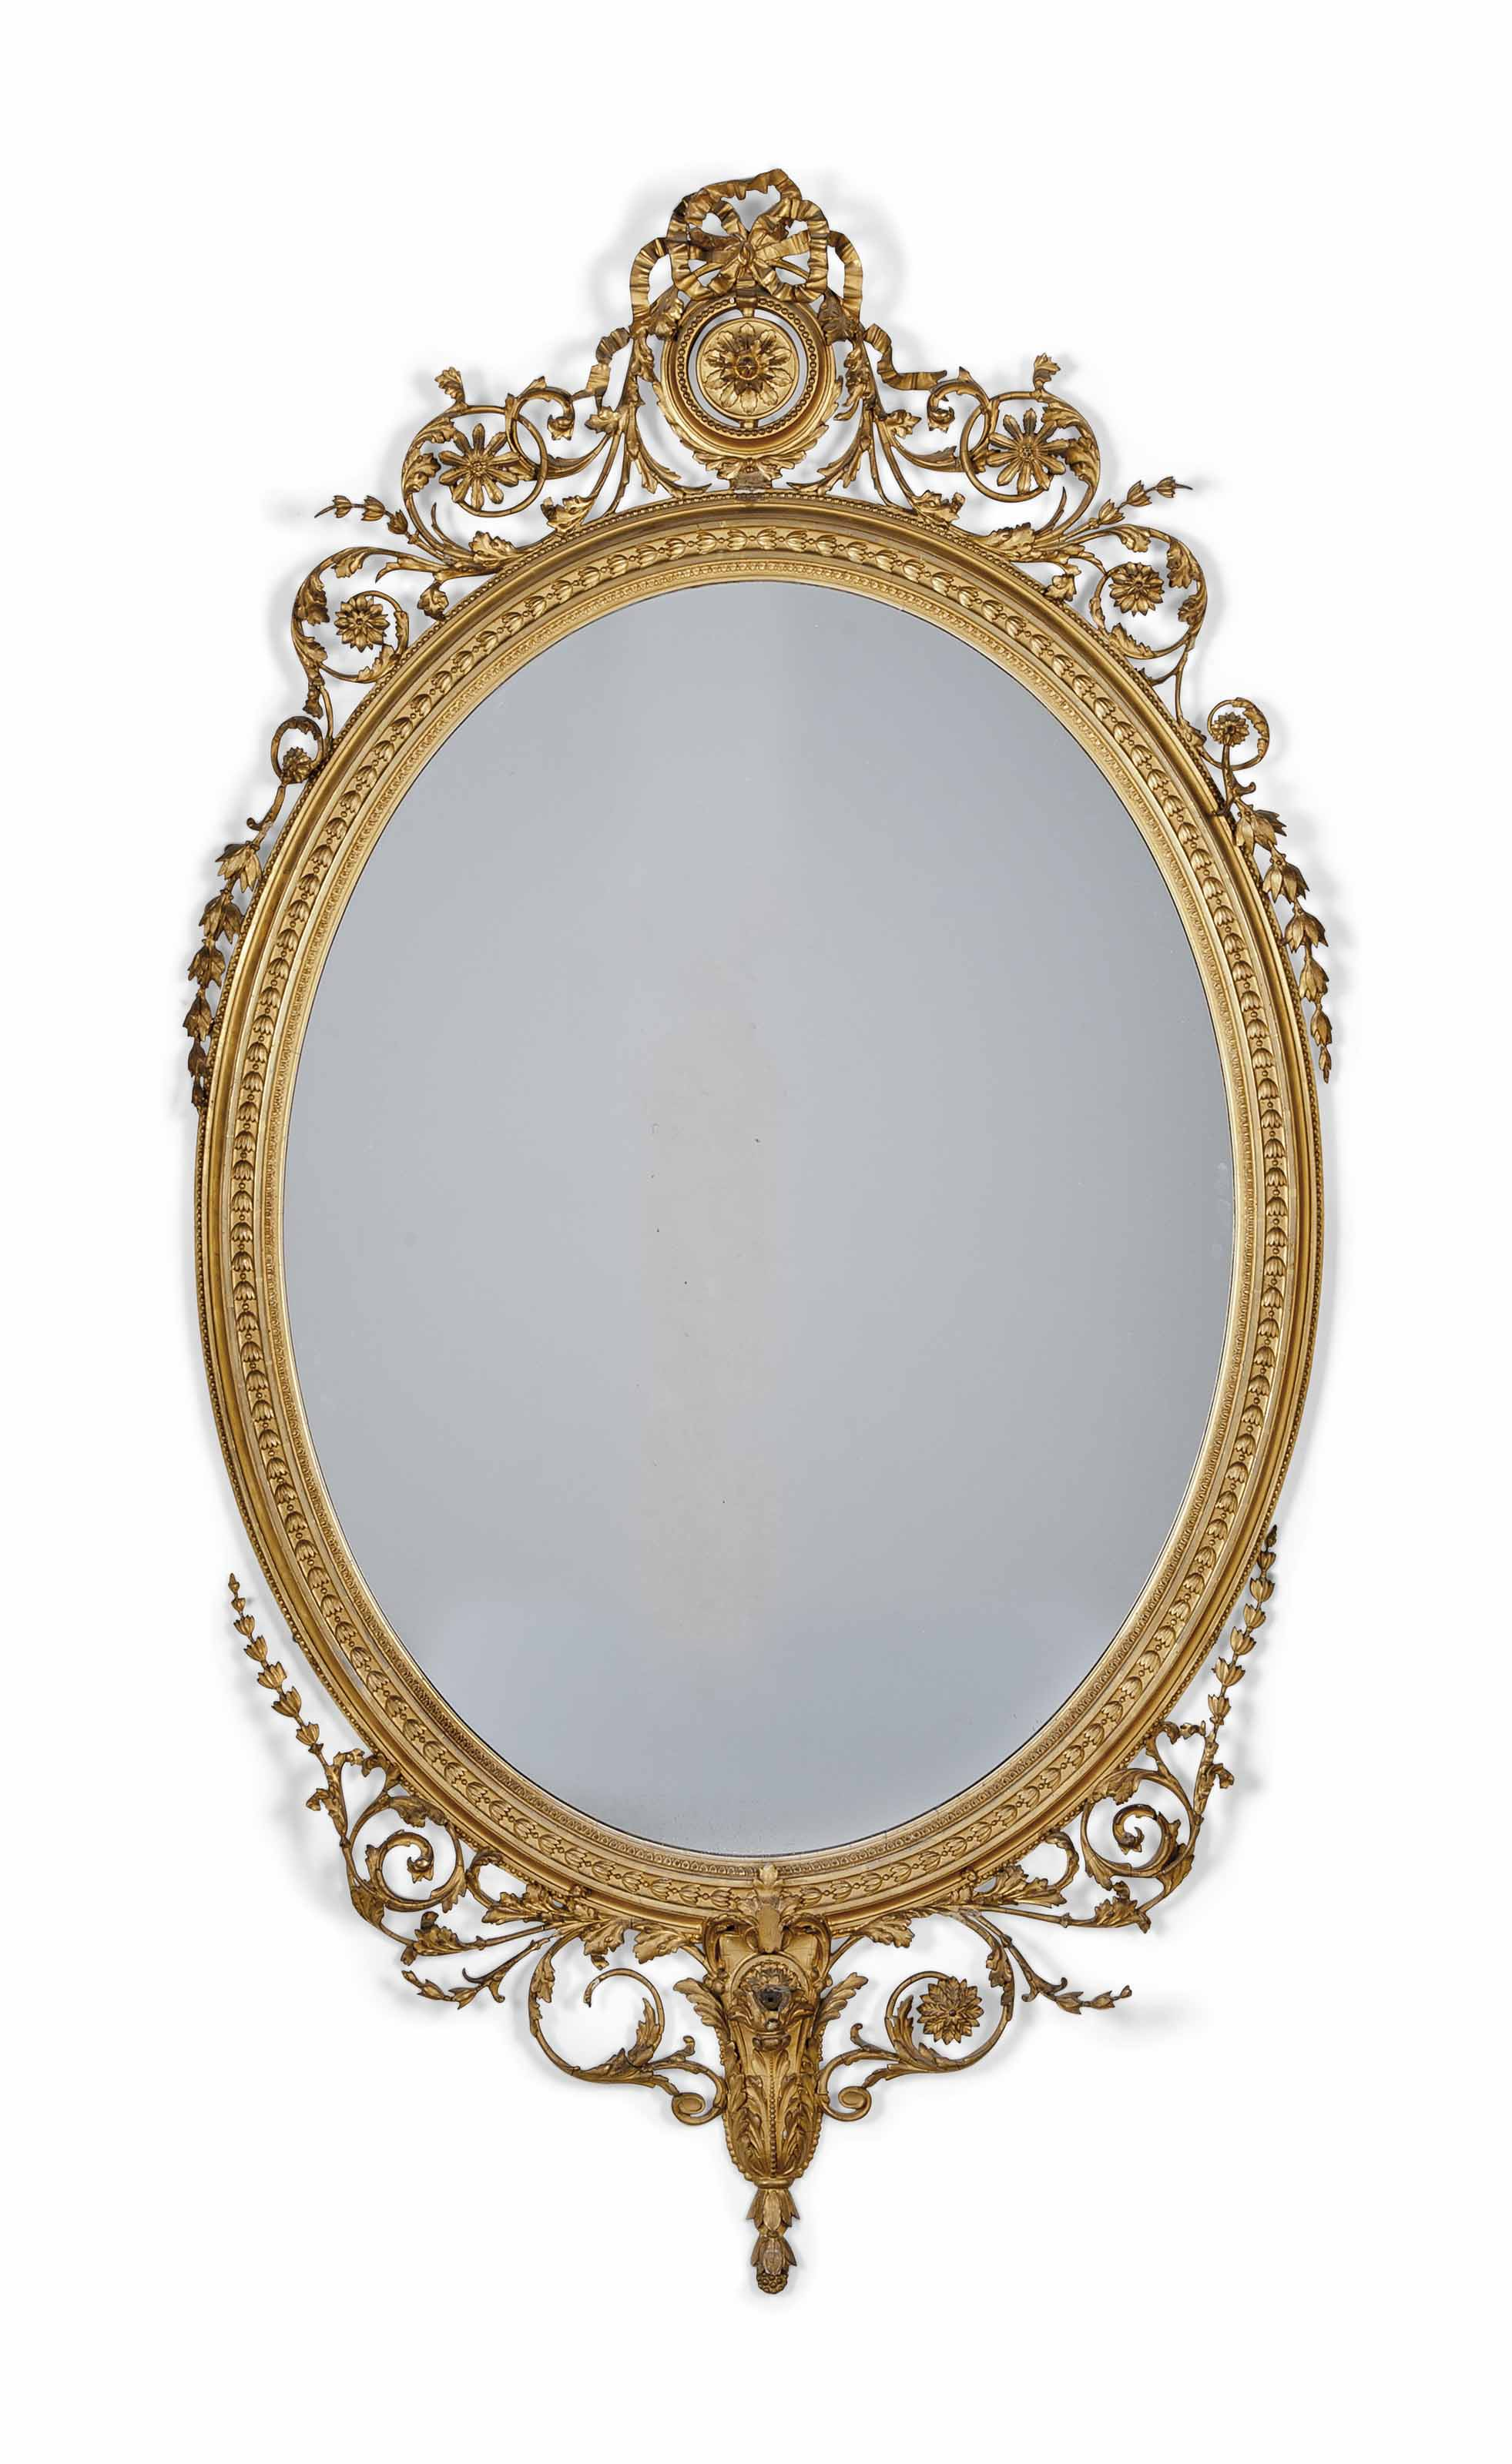 A GILTWOOD AND COMPOSITION OVAL MIRROR